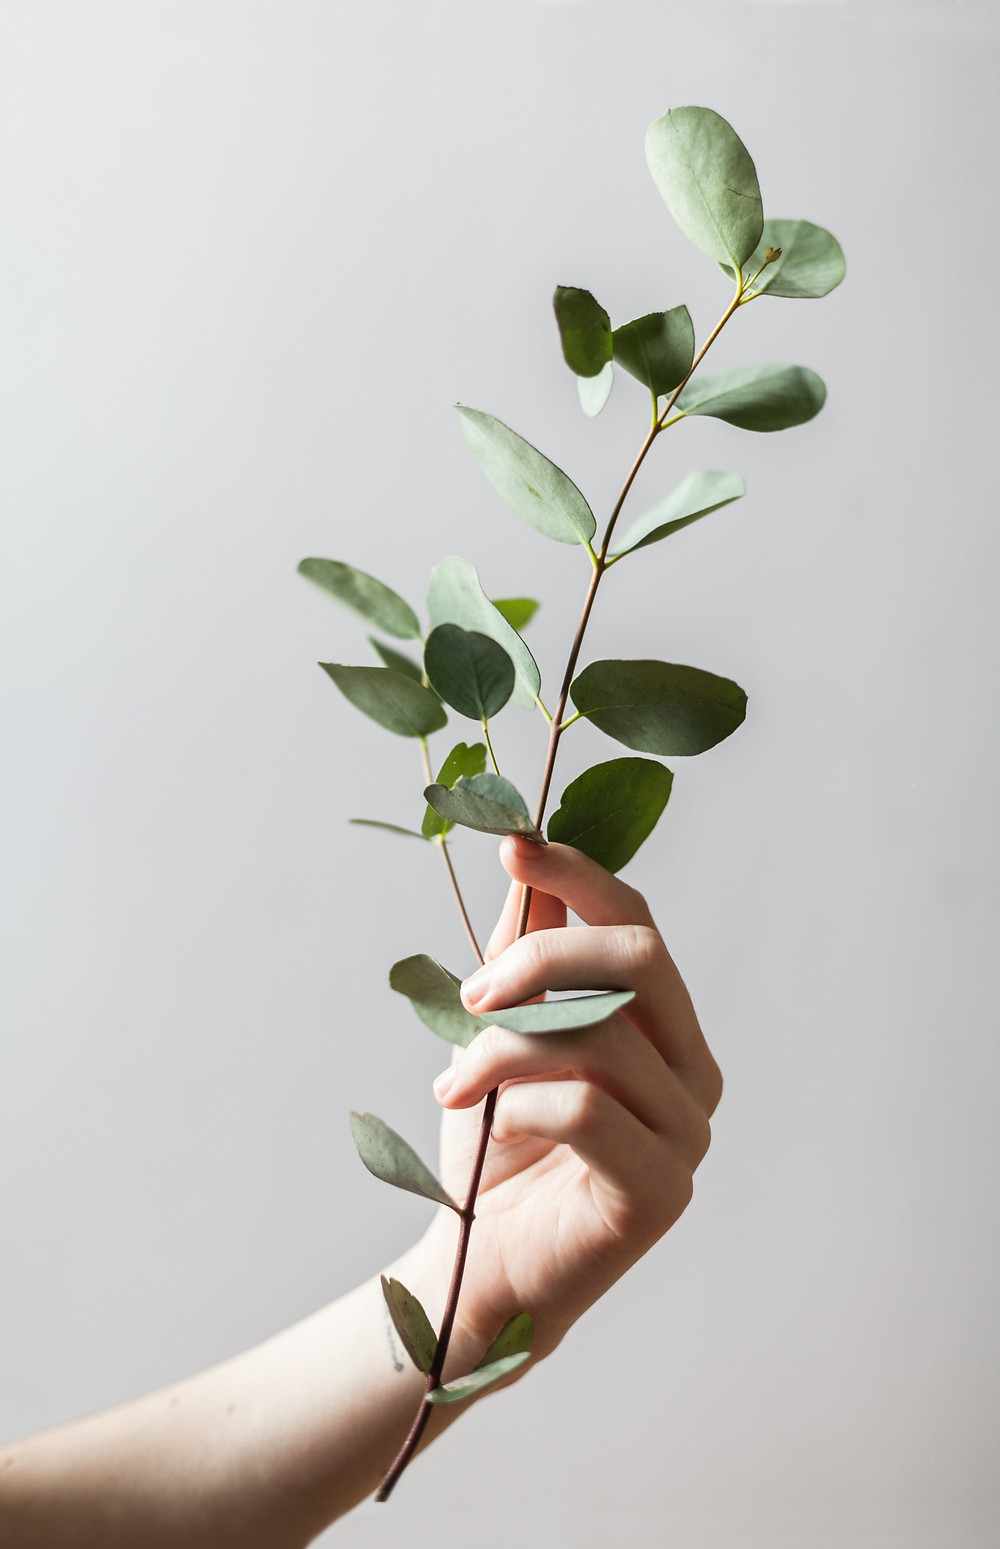 The gentle practice of radical self-care and it's long-lasting effects on well-being